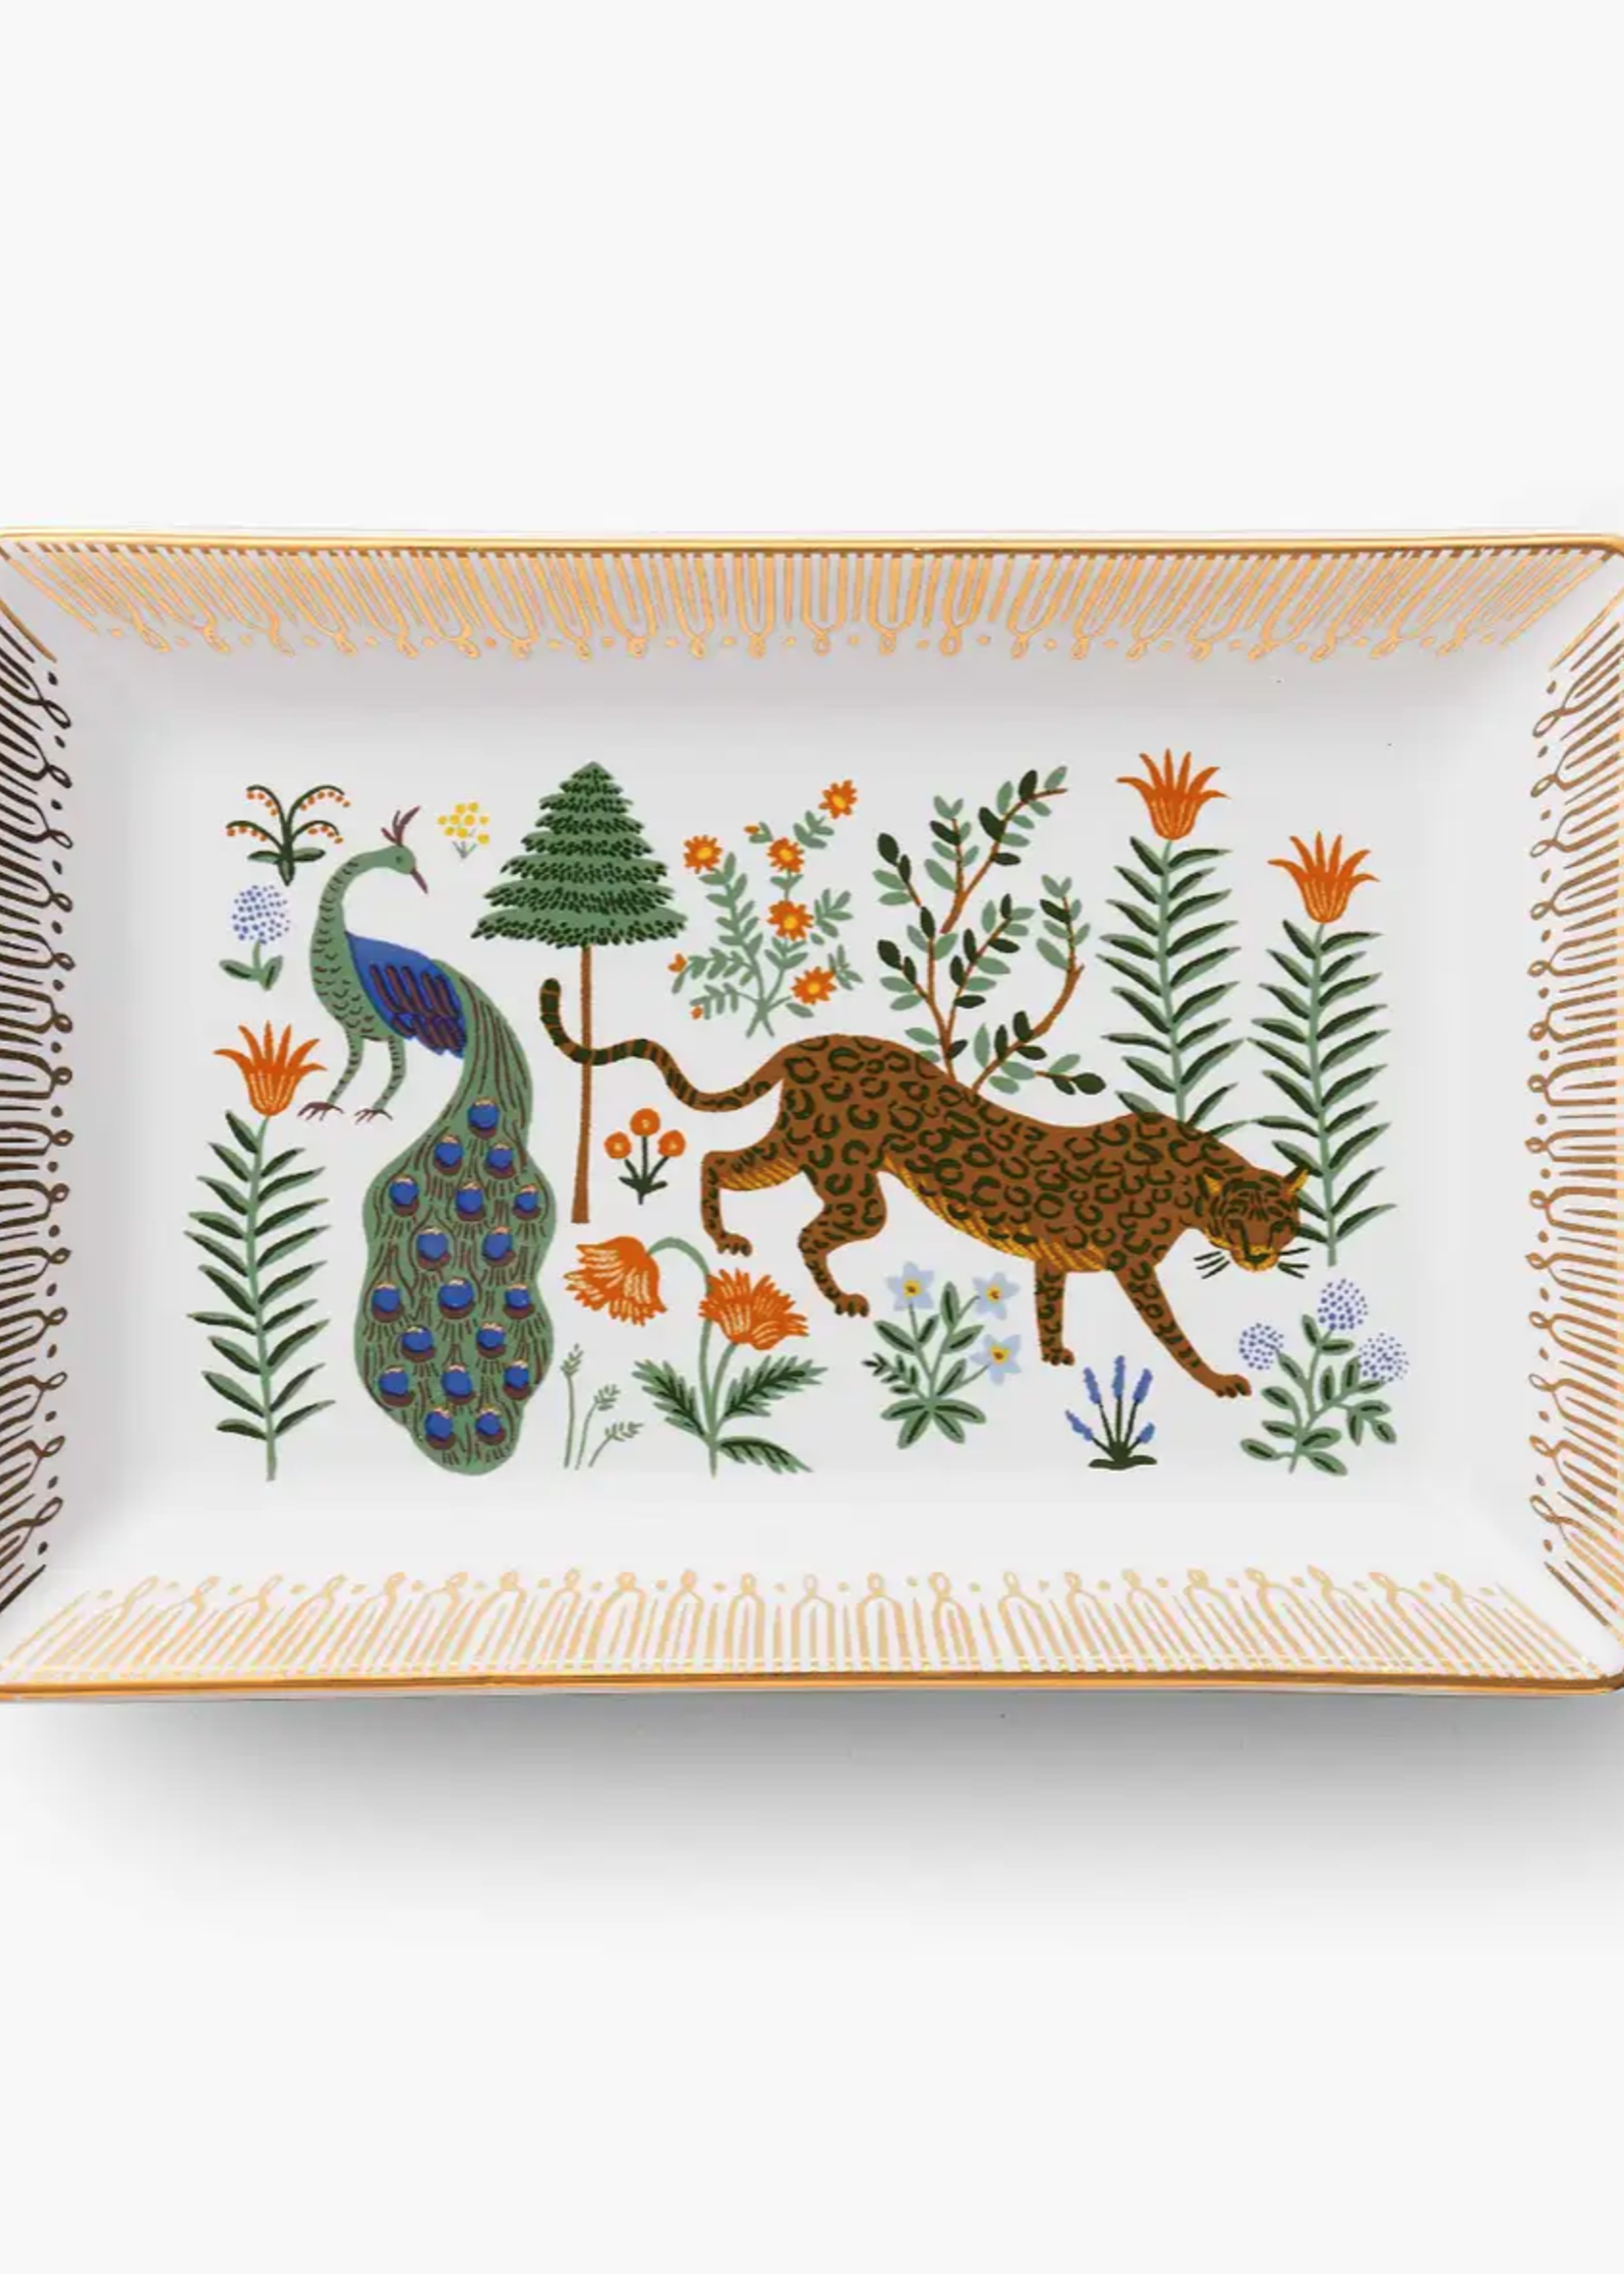 Menagerie Catch All Tray